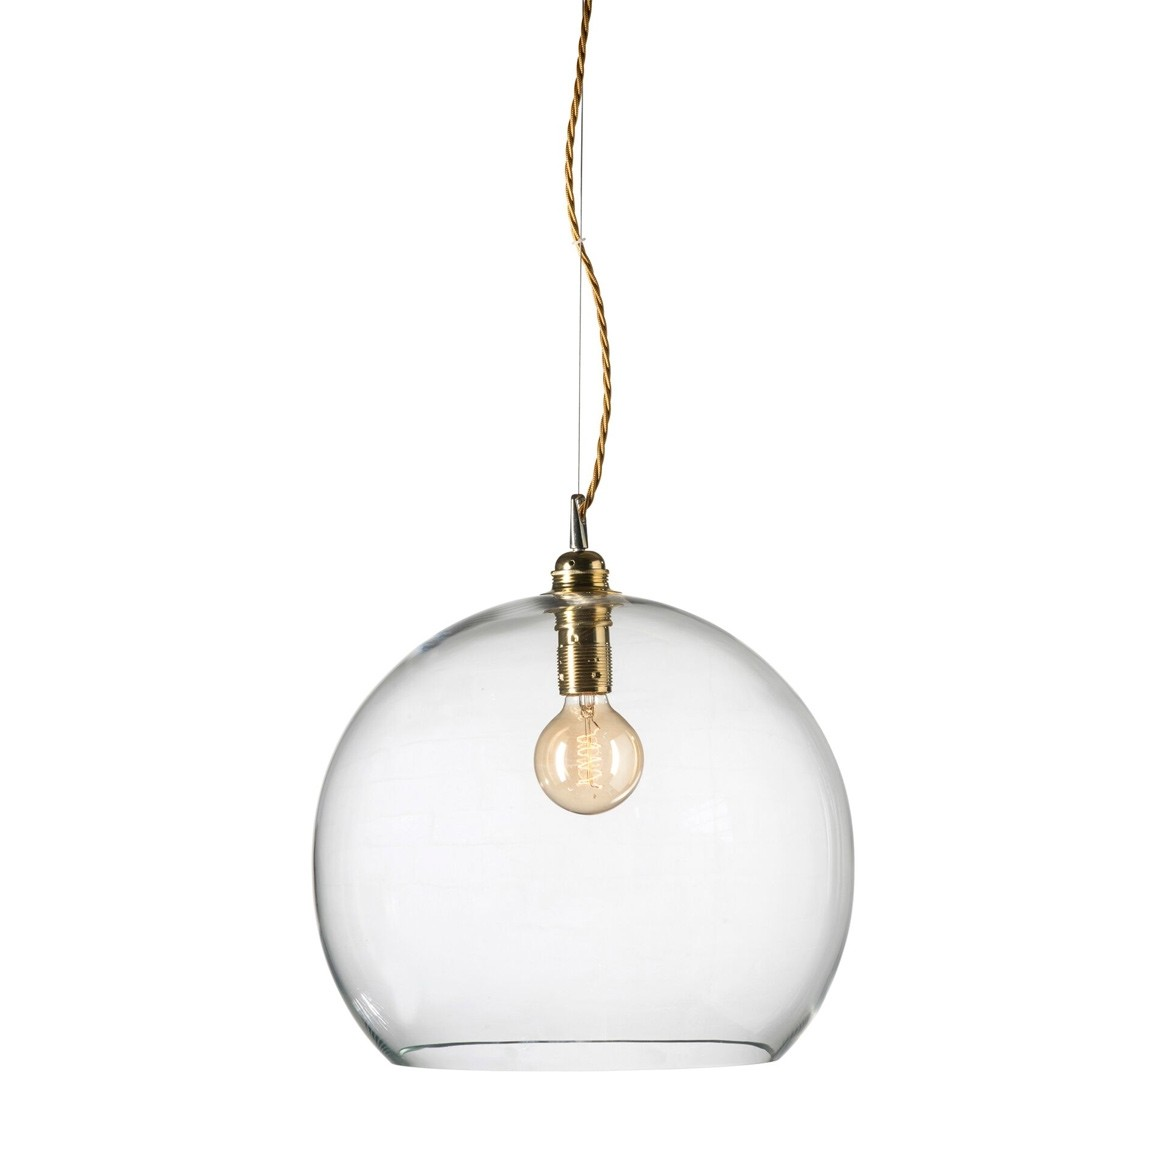 Orb glass pendant 39 cm | clear, brass wire